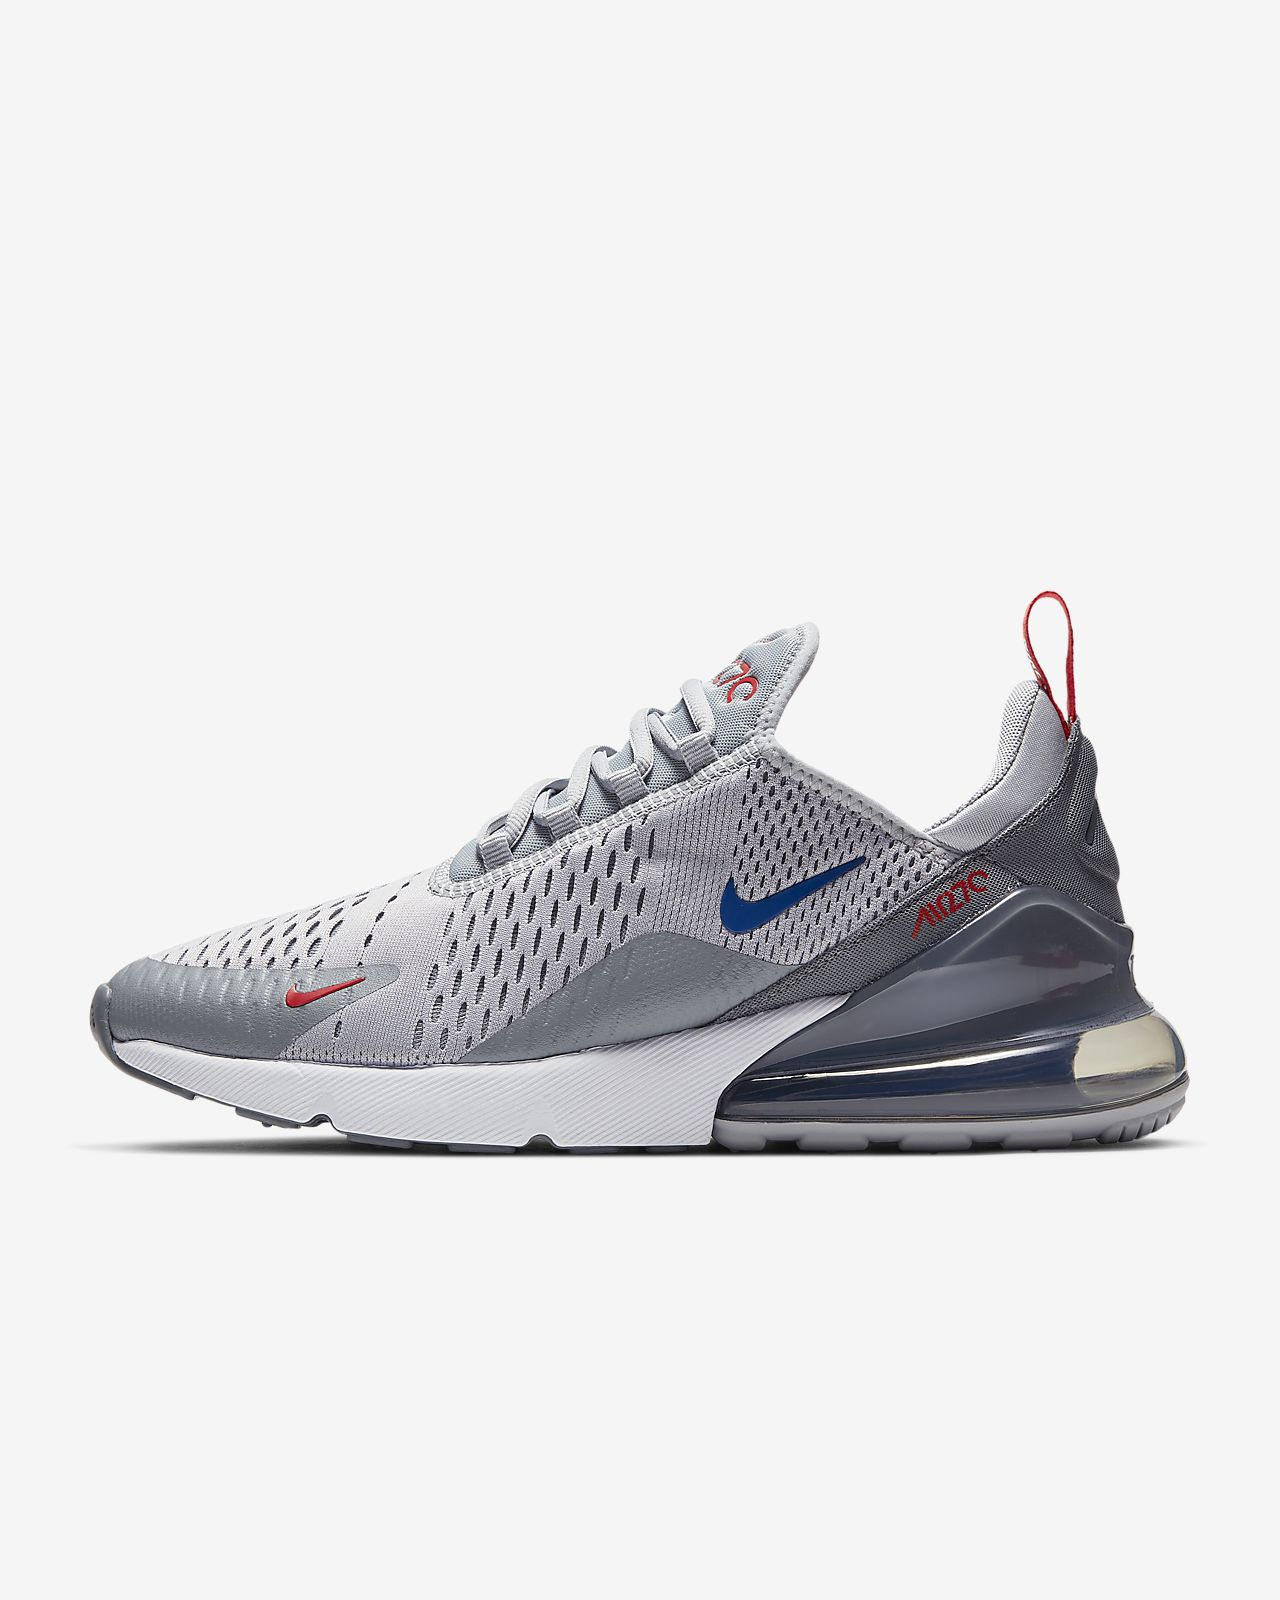 cheap for discount 2af3a 87bc6 ... Chaussure Nike Air Max 270 pour Homme